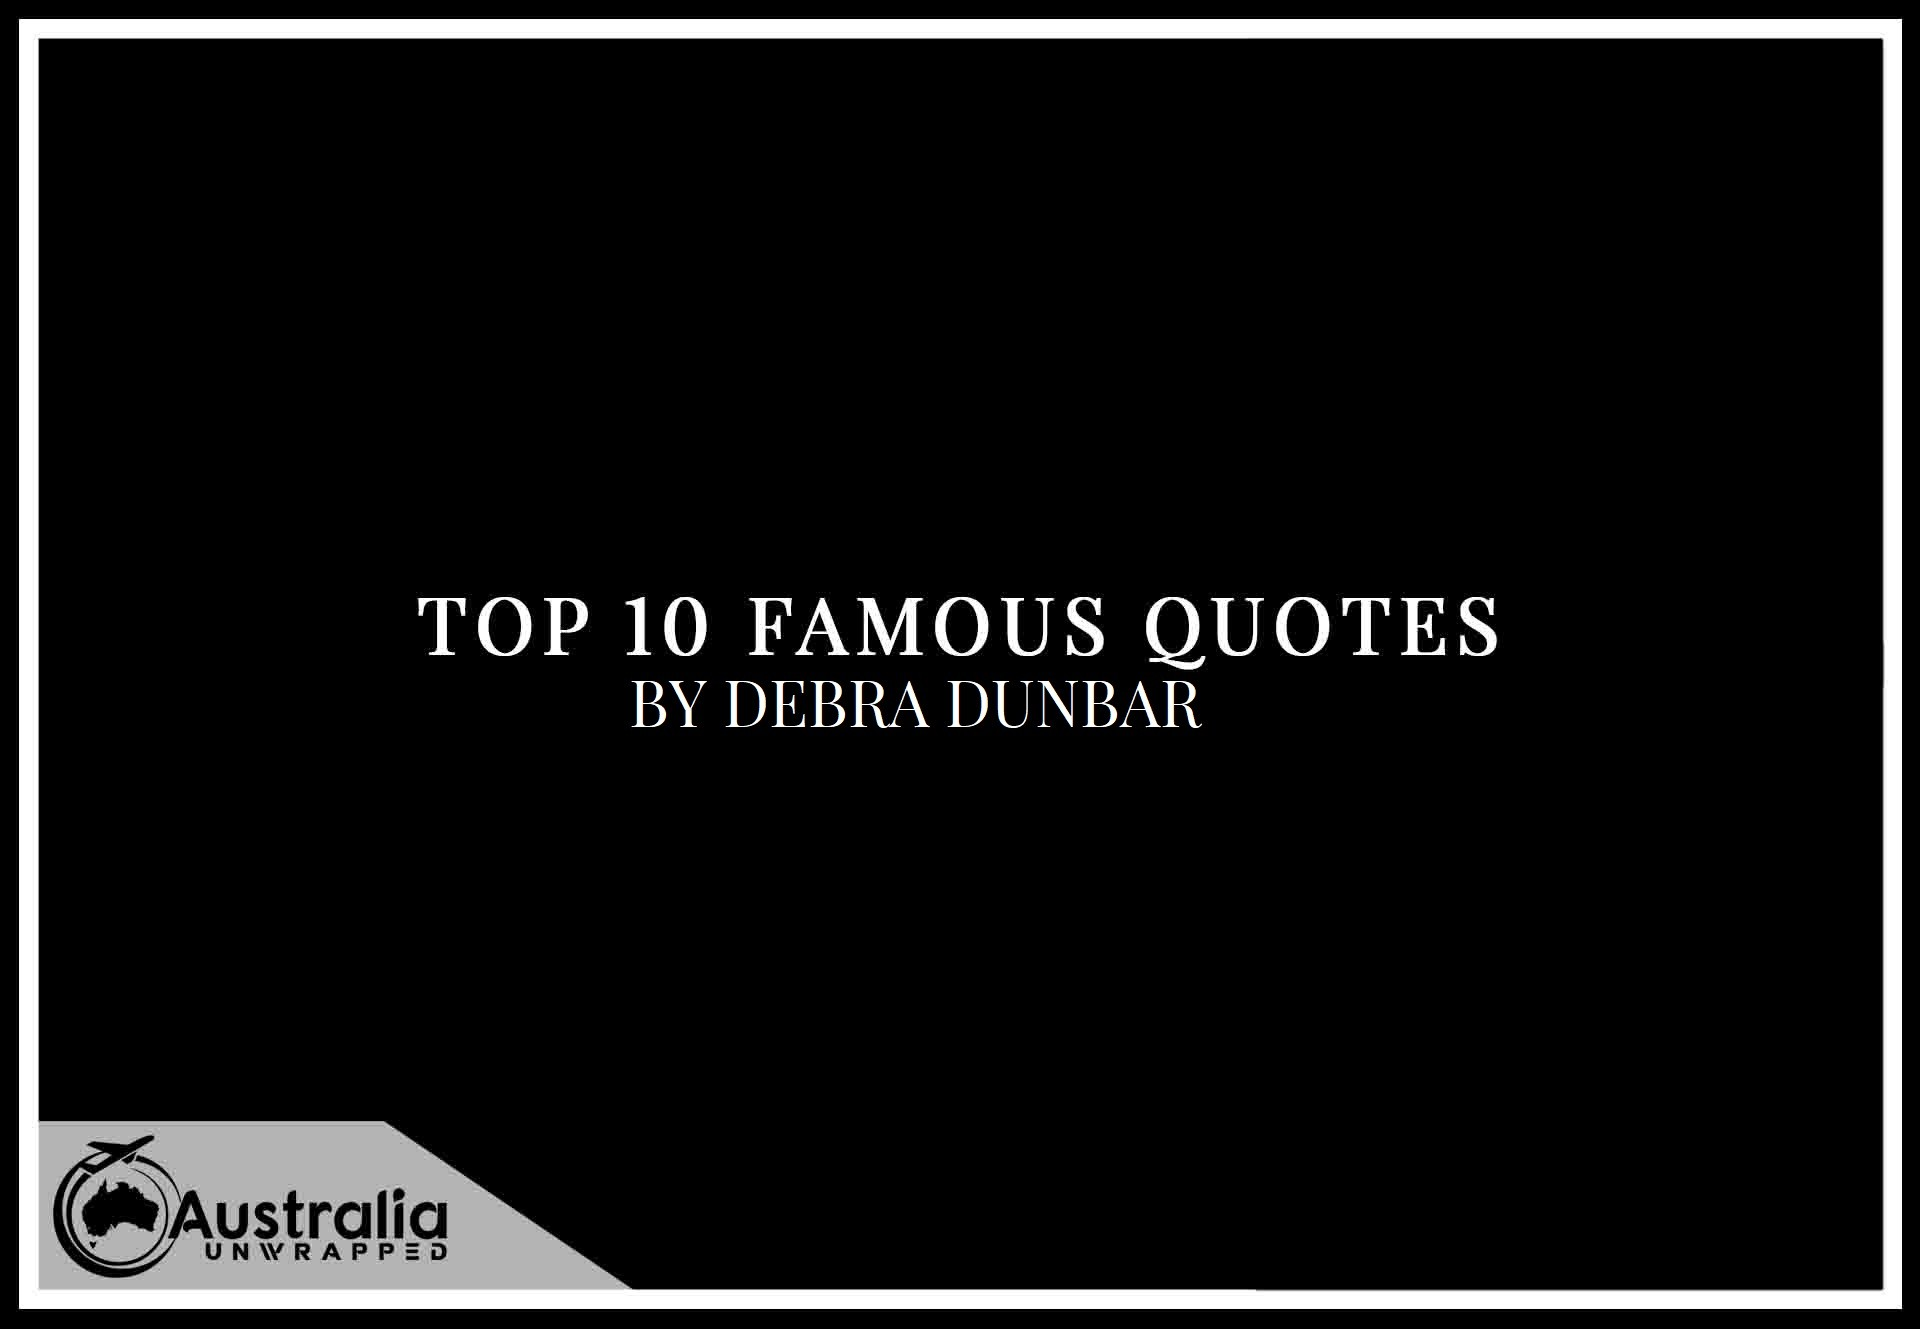 Top 10 Famous Quotes by Author Debra Dunbar